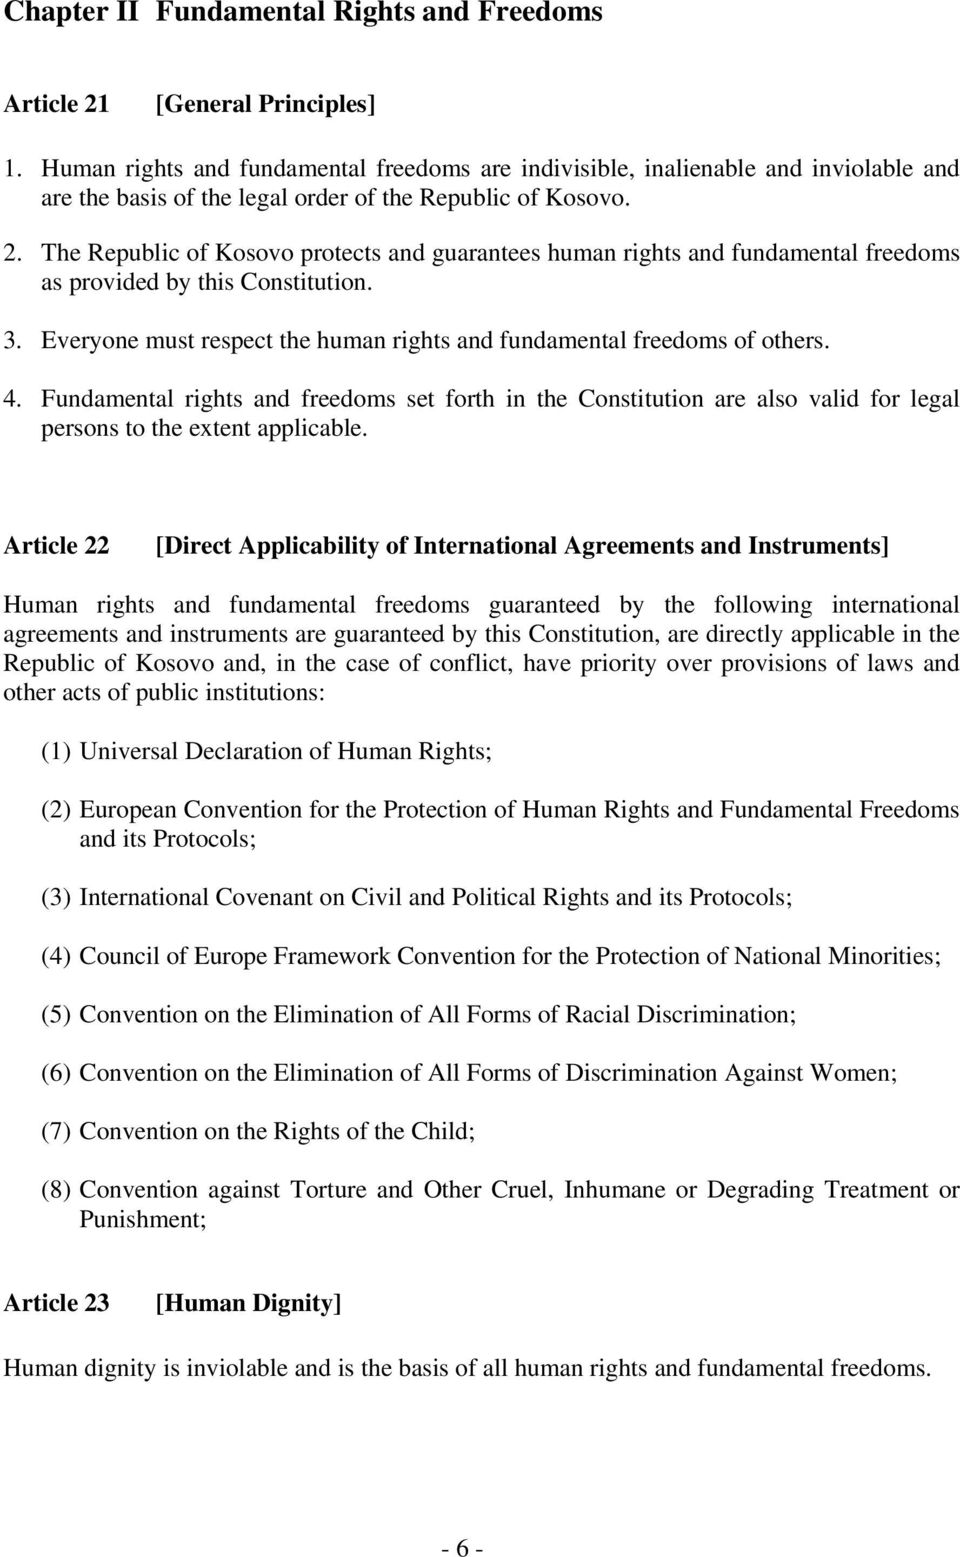 The Republic of Kosovo protects and guarantees human rights and fundamental freedoms as provided by this Constitution. 3. Everyone must respect the human rights and fundamental freedoms of others. 4.